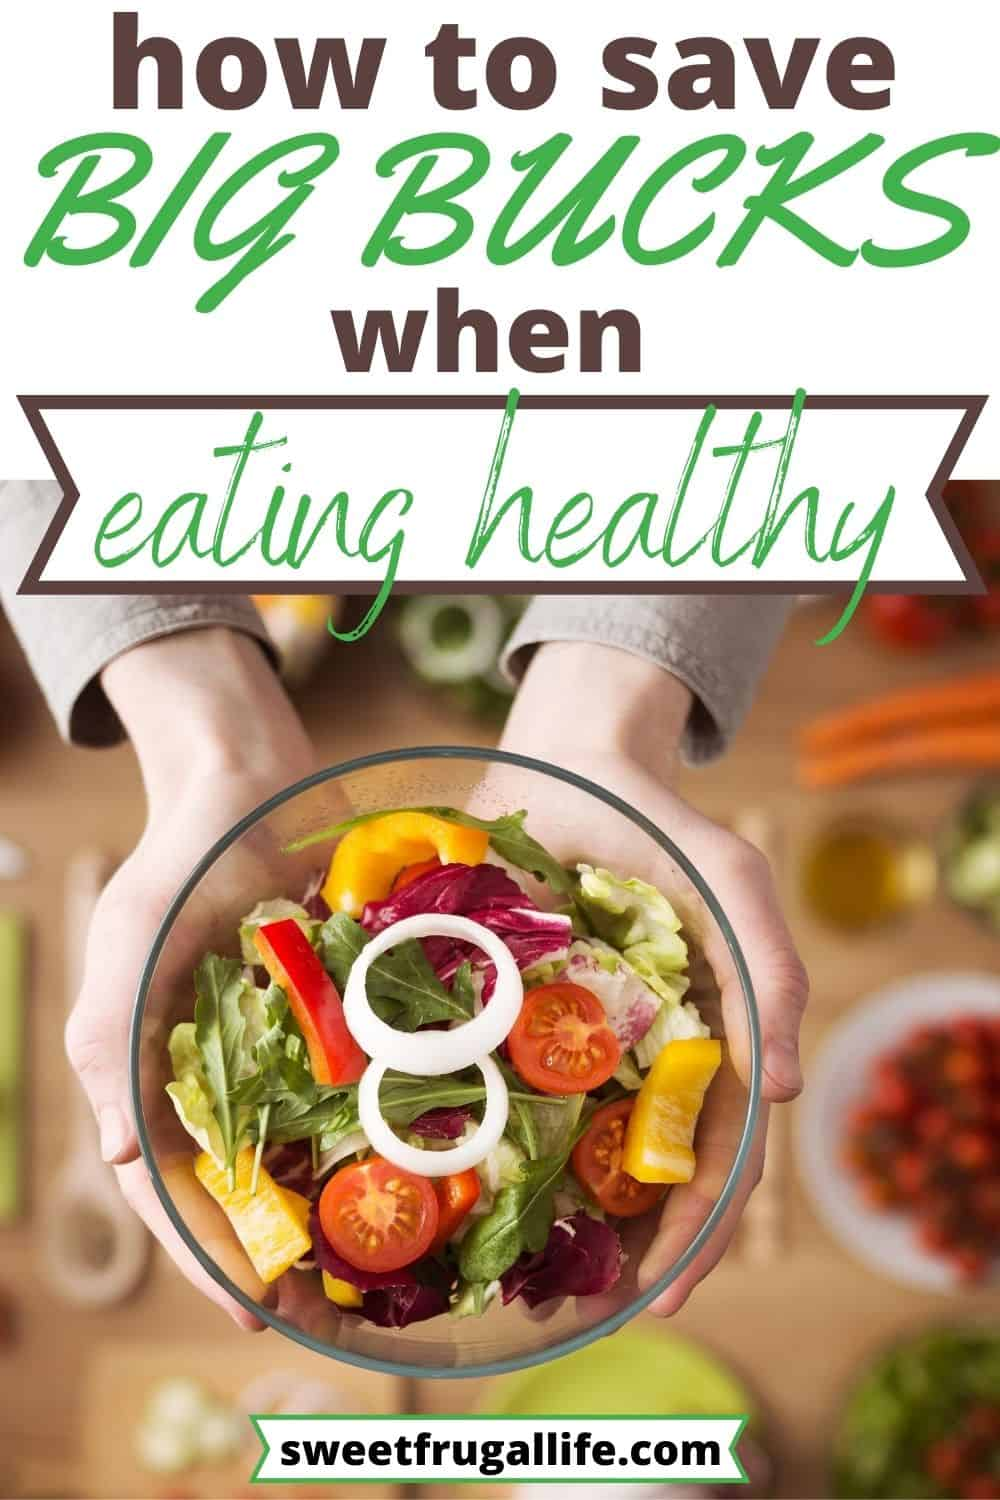 save big bucks when eating healthy - how to eat healthy on a budget